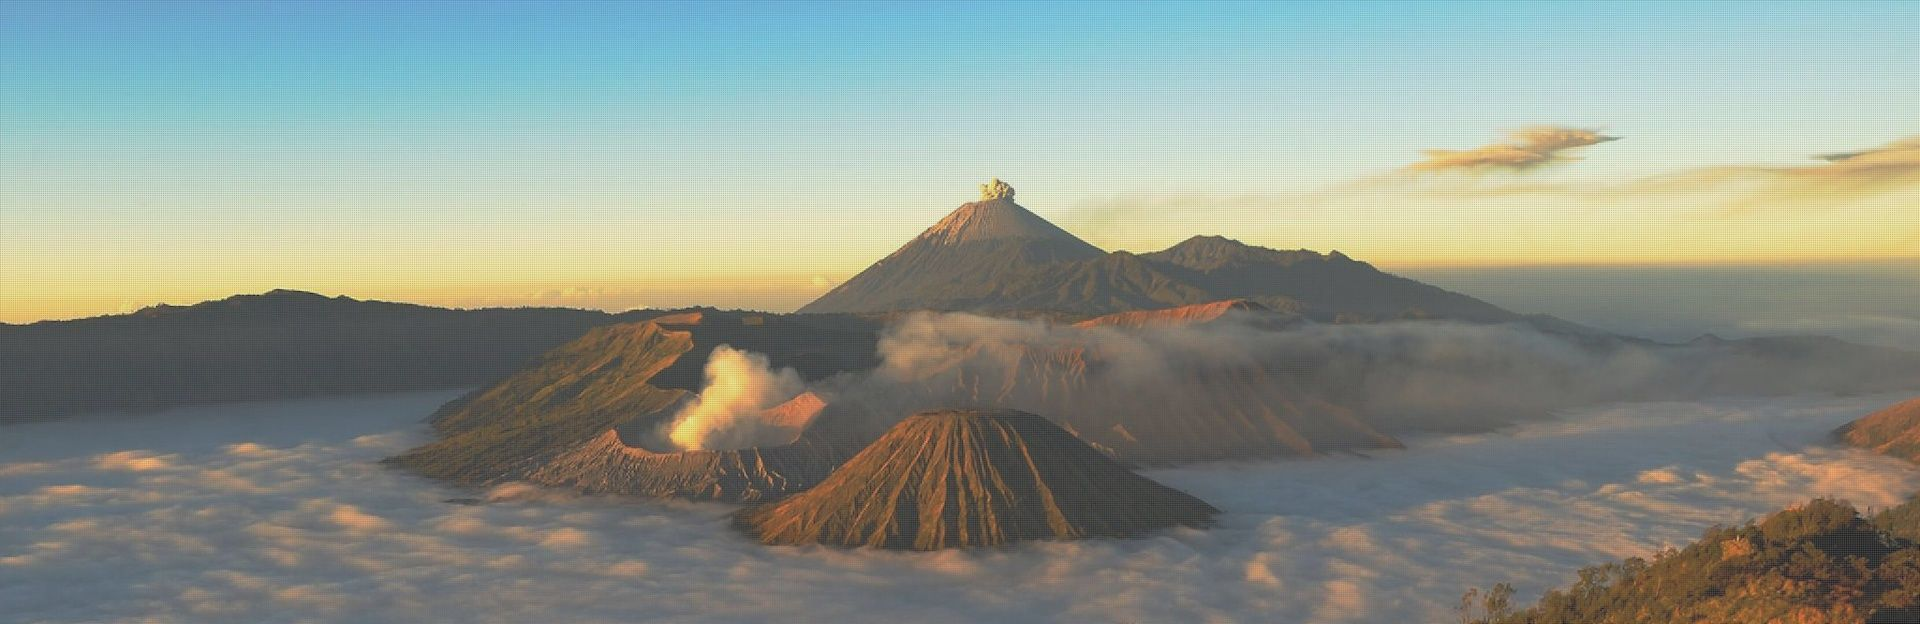 Enjoying Mount Bromo Morning Charm